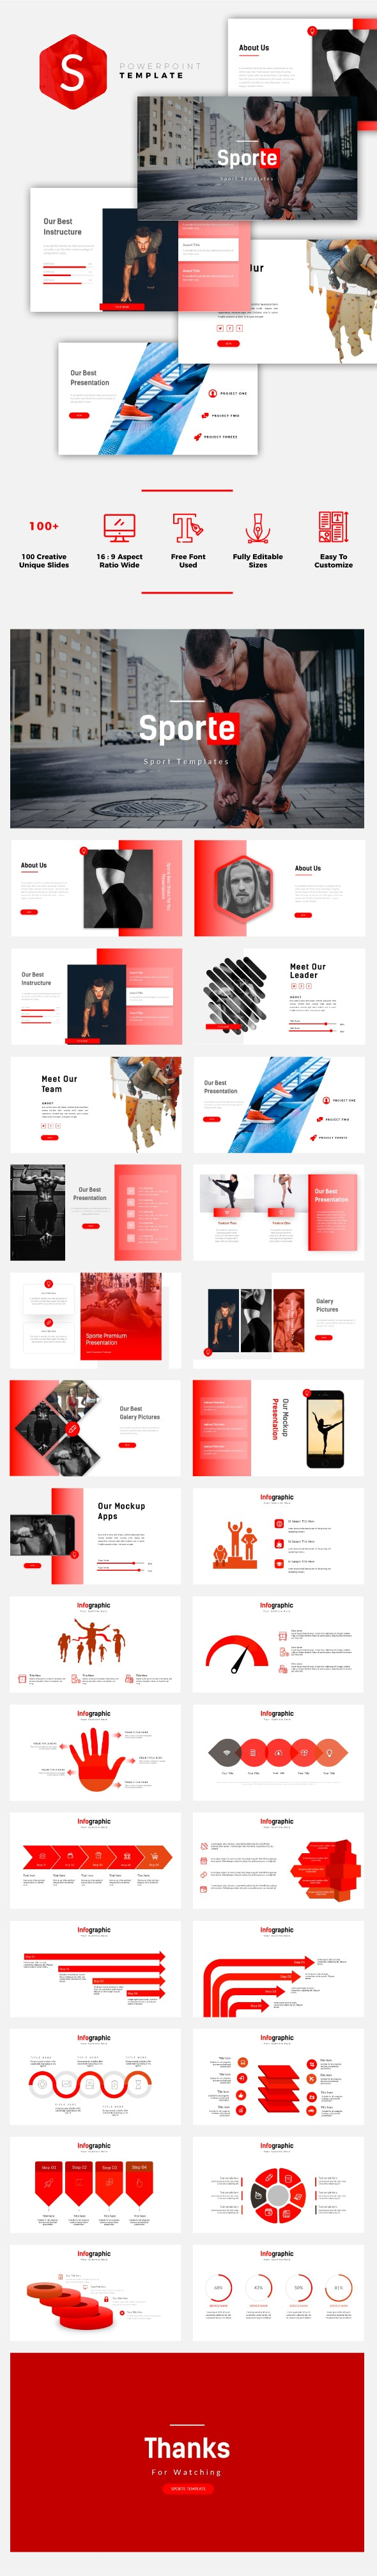 Sporte - Sport PowerPoint Template - Miscellaneous PowerPoint Templates